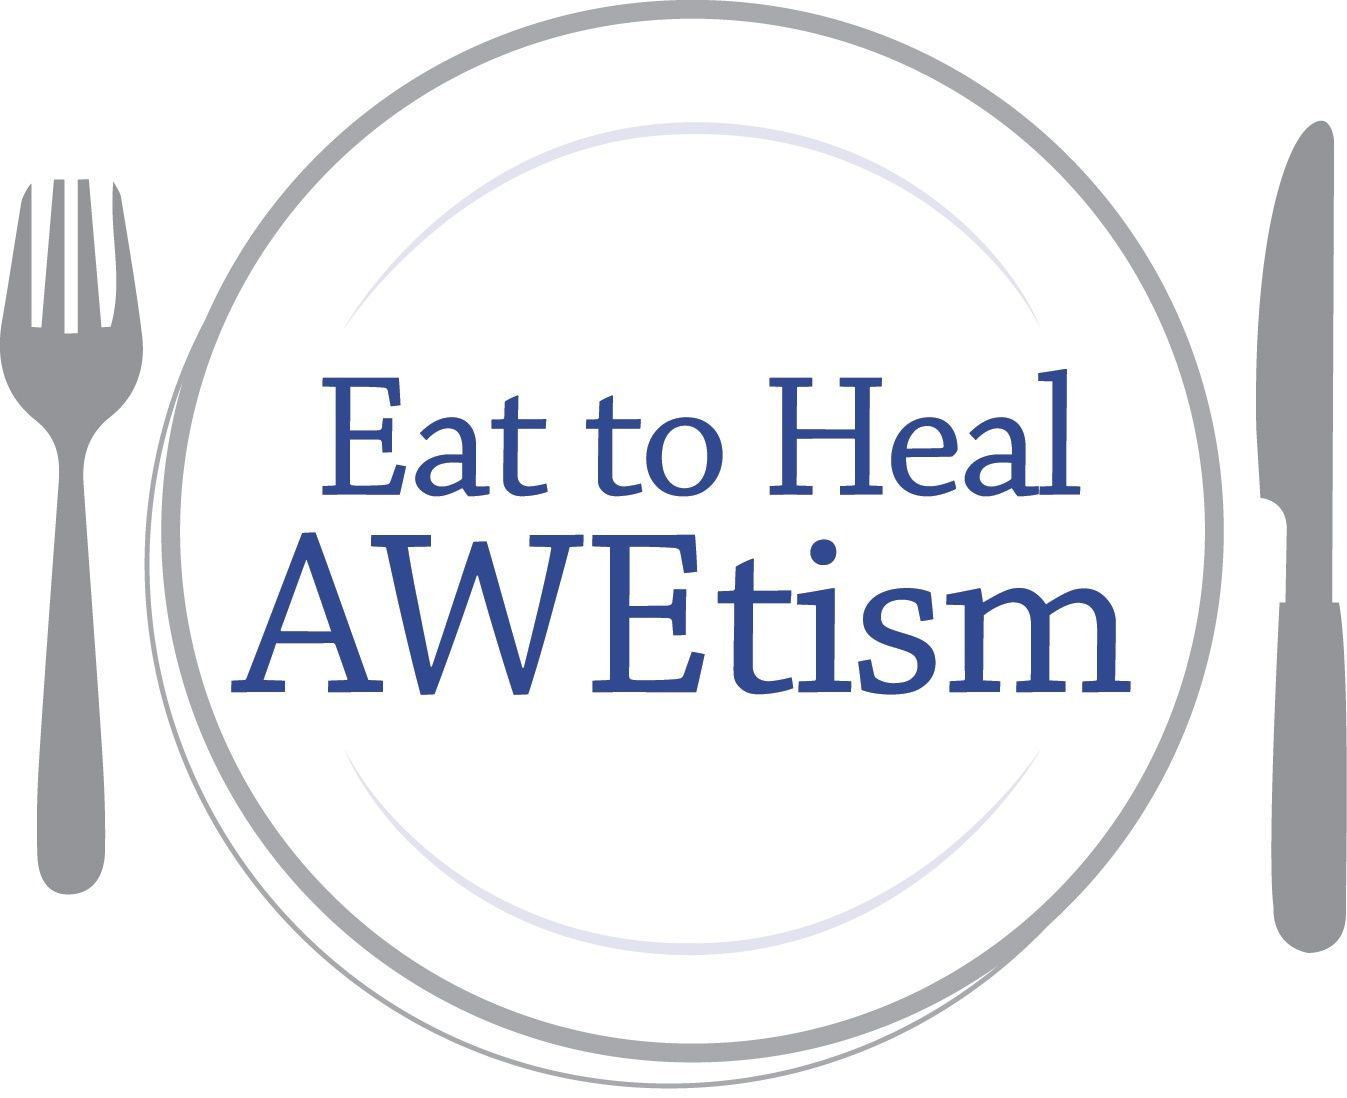 sites/59985237/Eat to Heal Autism Logo_Full Color.jpg